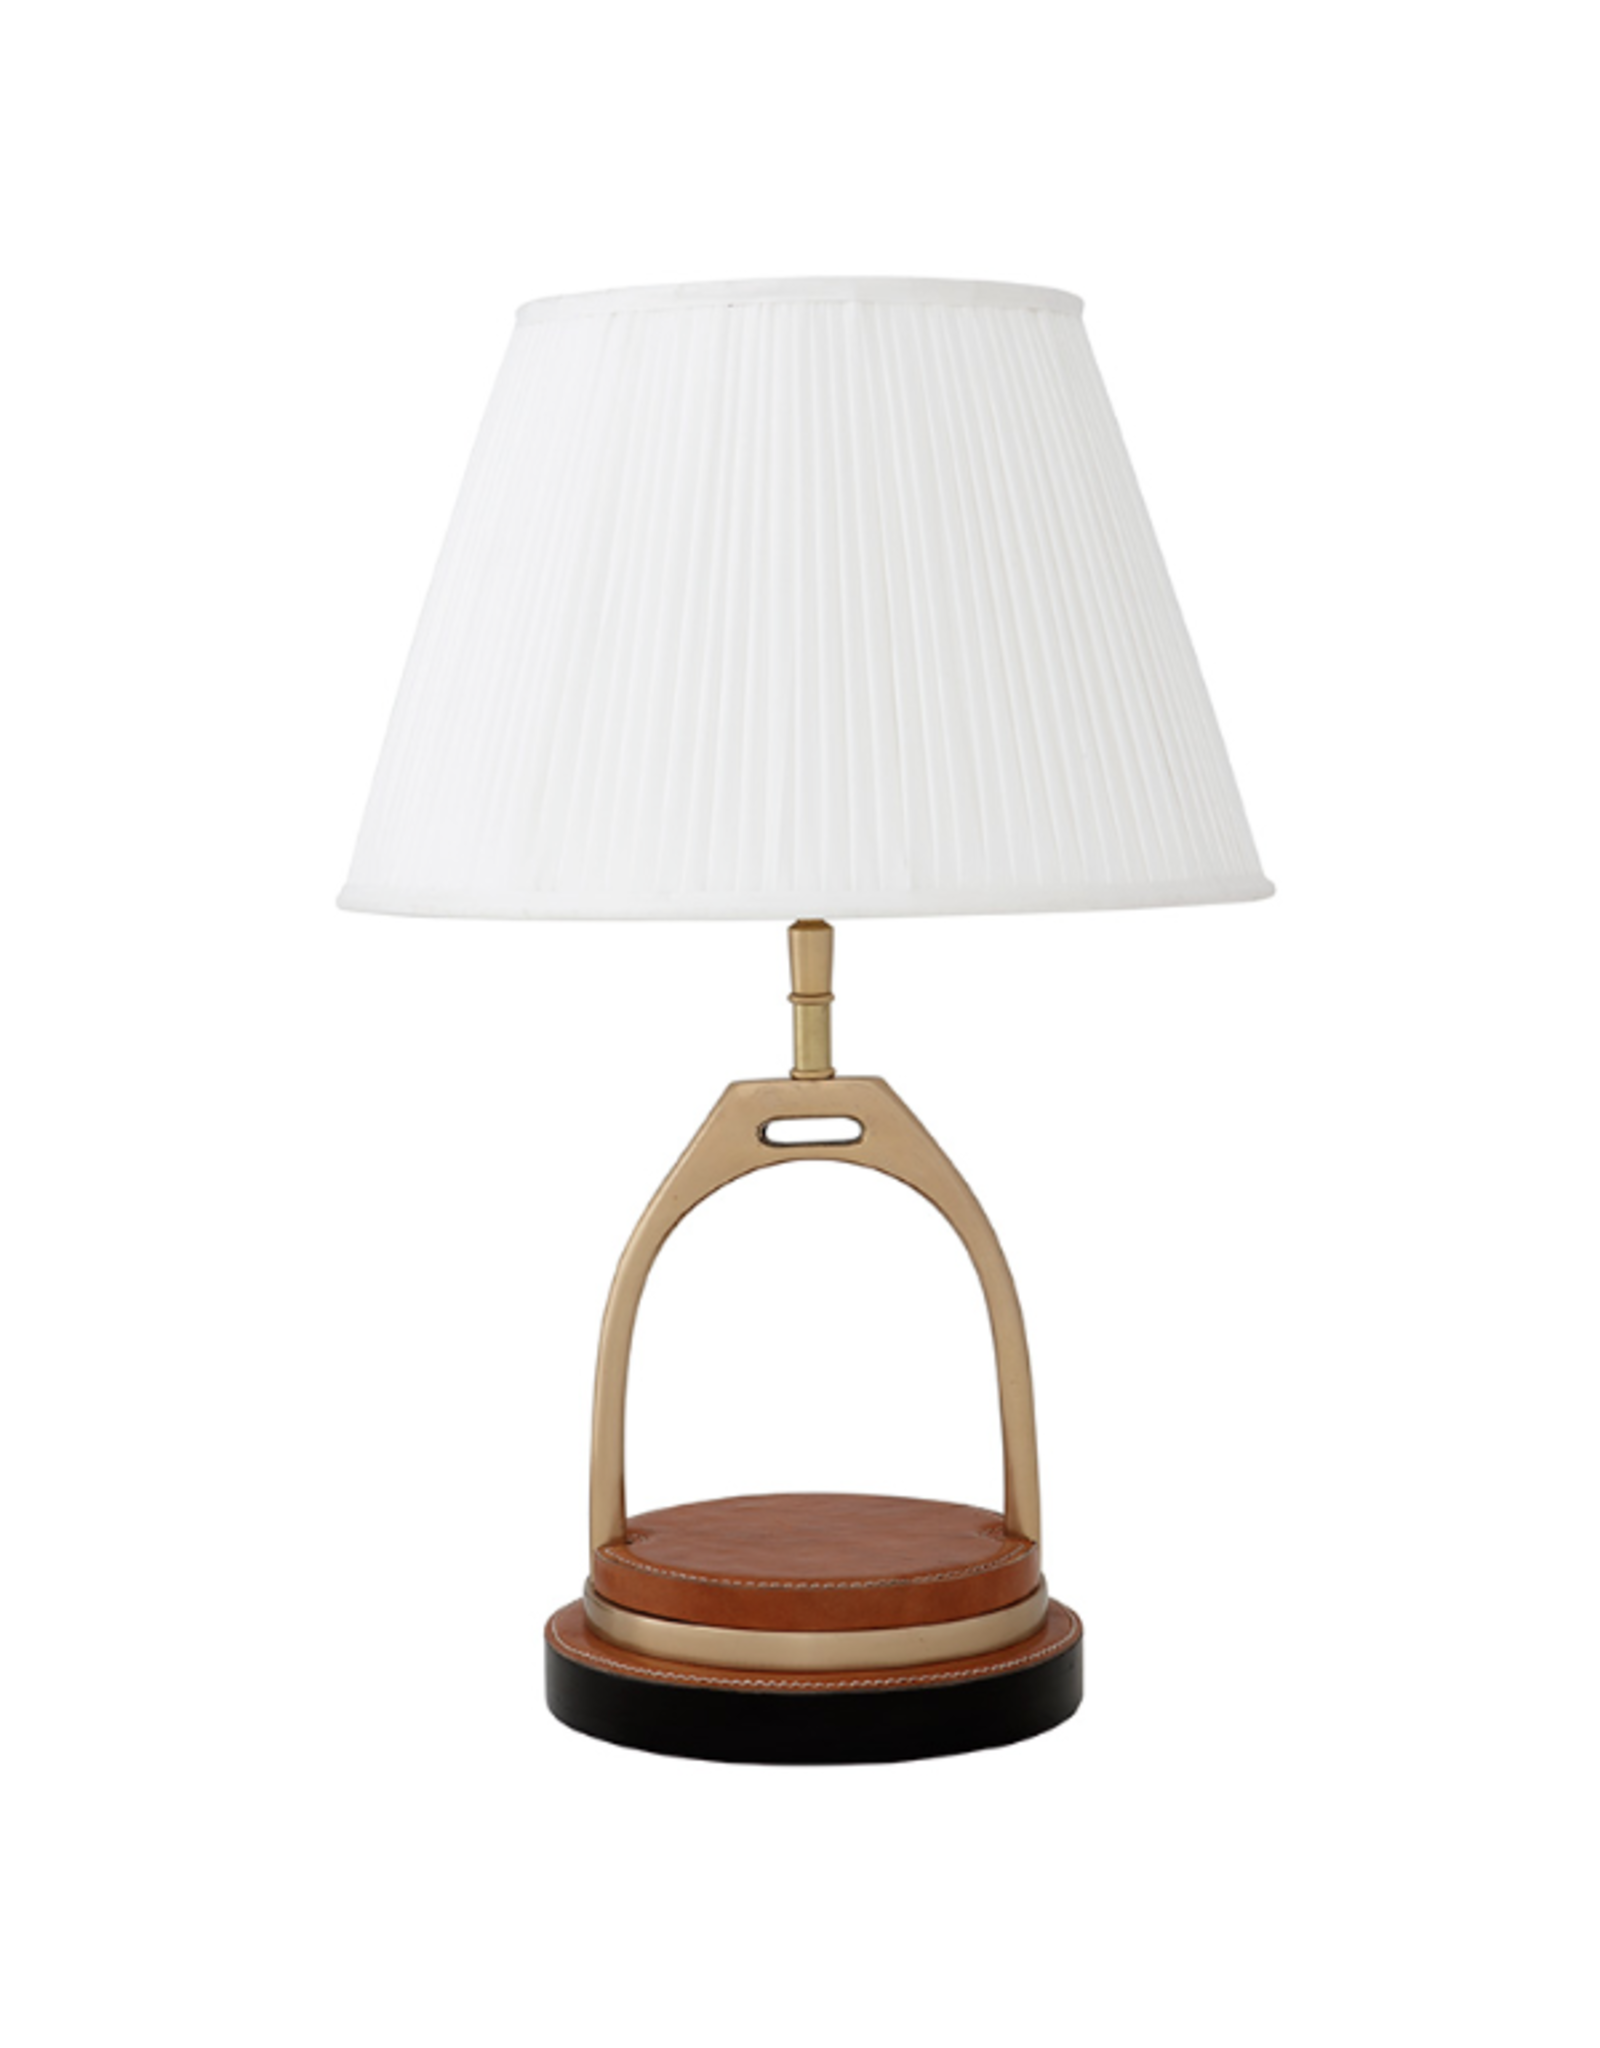 EICHHOLTZ LAMP PRINCETON AGED BRASS INCLUDING SHADE